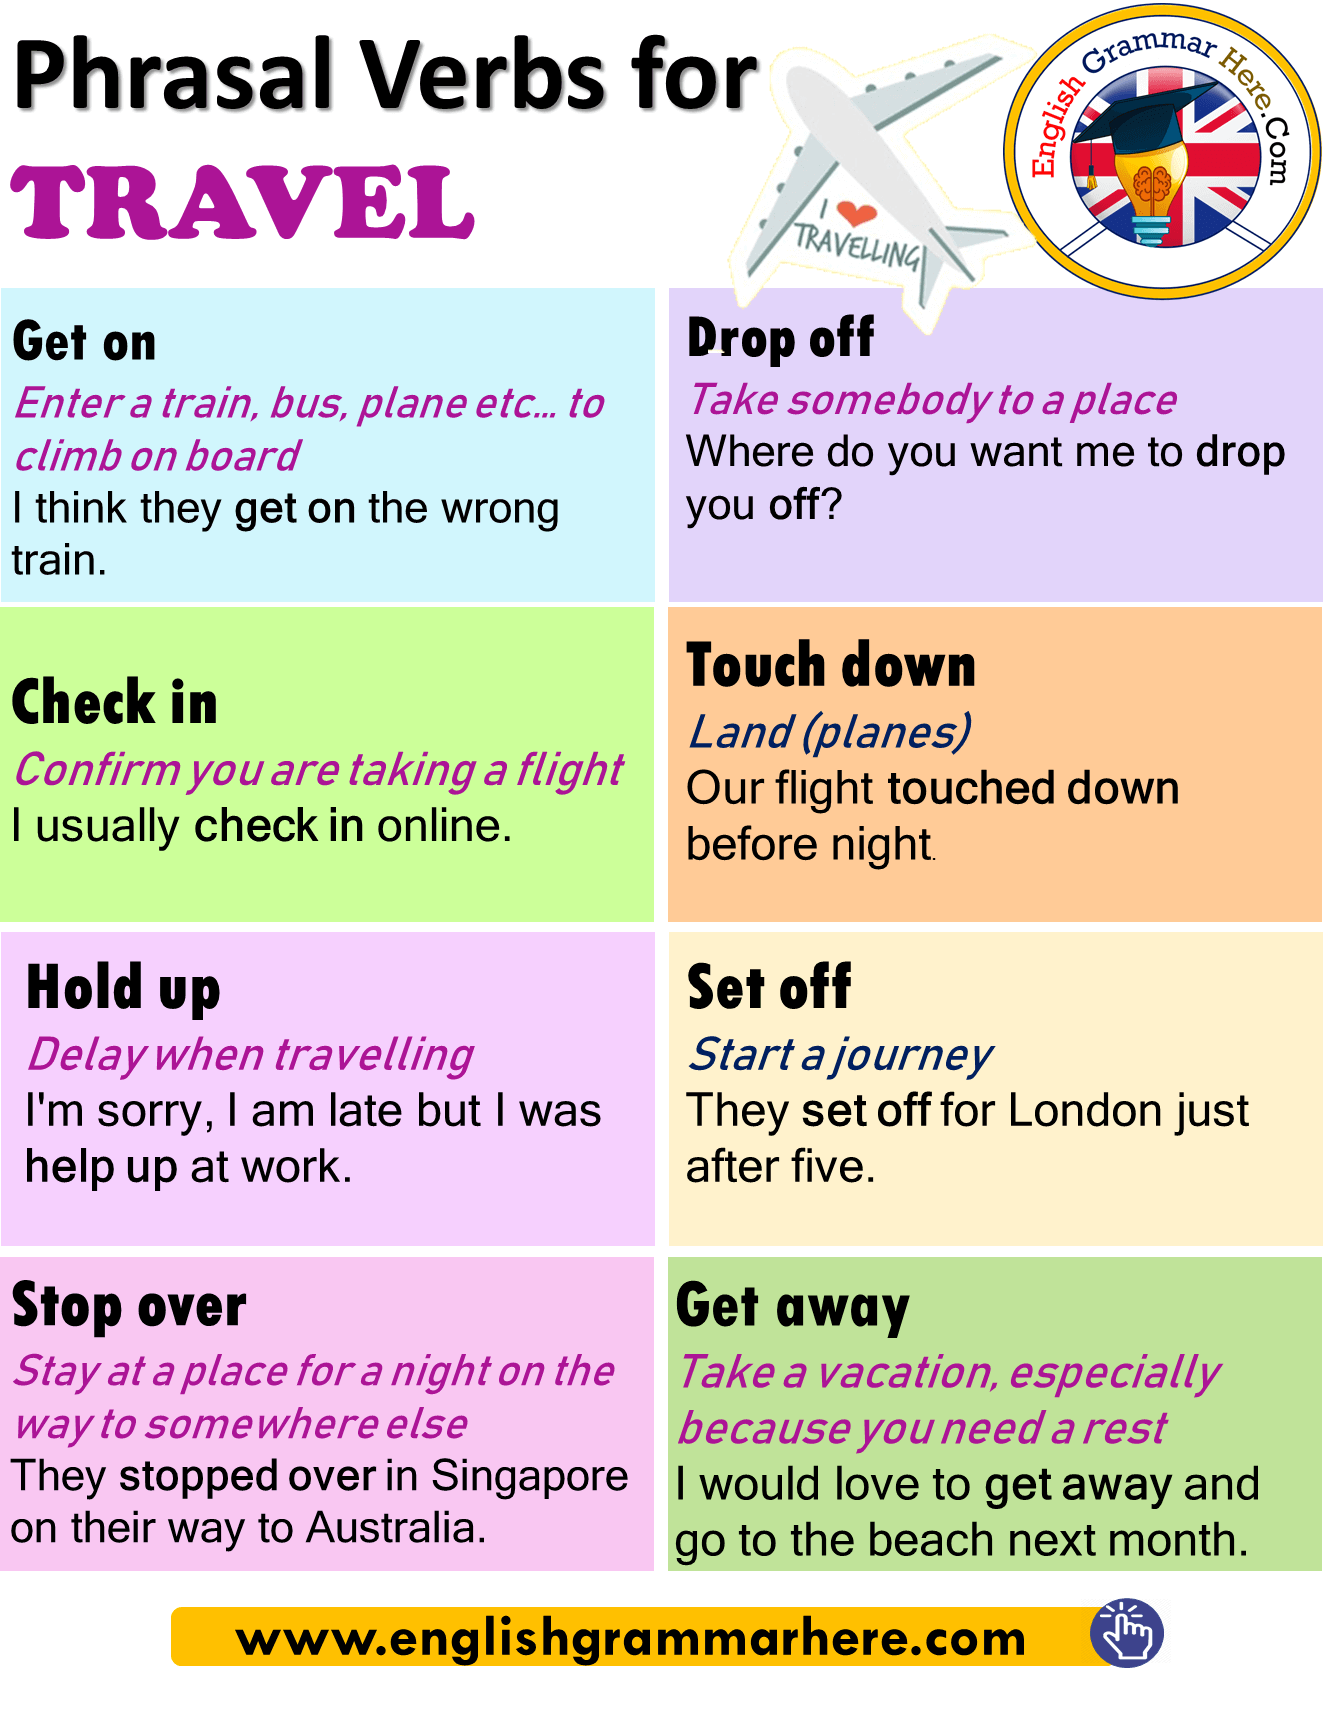 Phrasal Verbs for TRAVEL, Definitions and Example Sentences